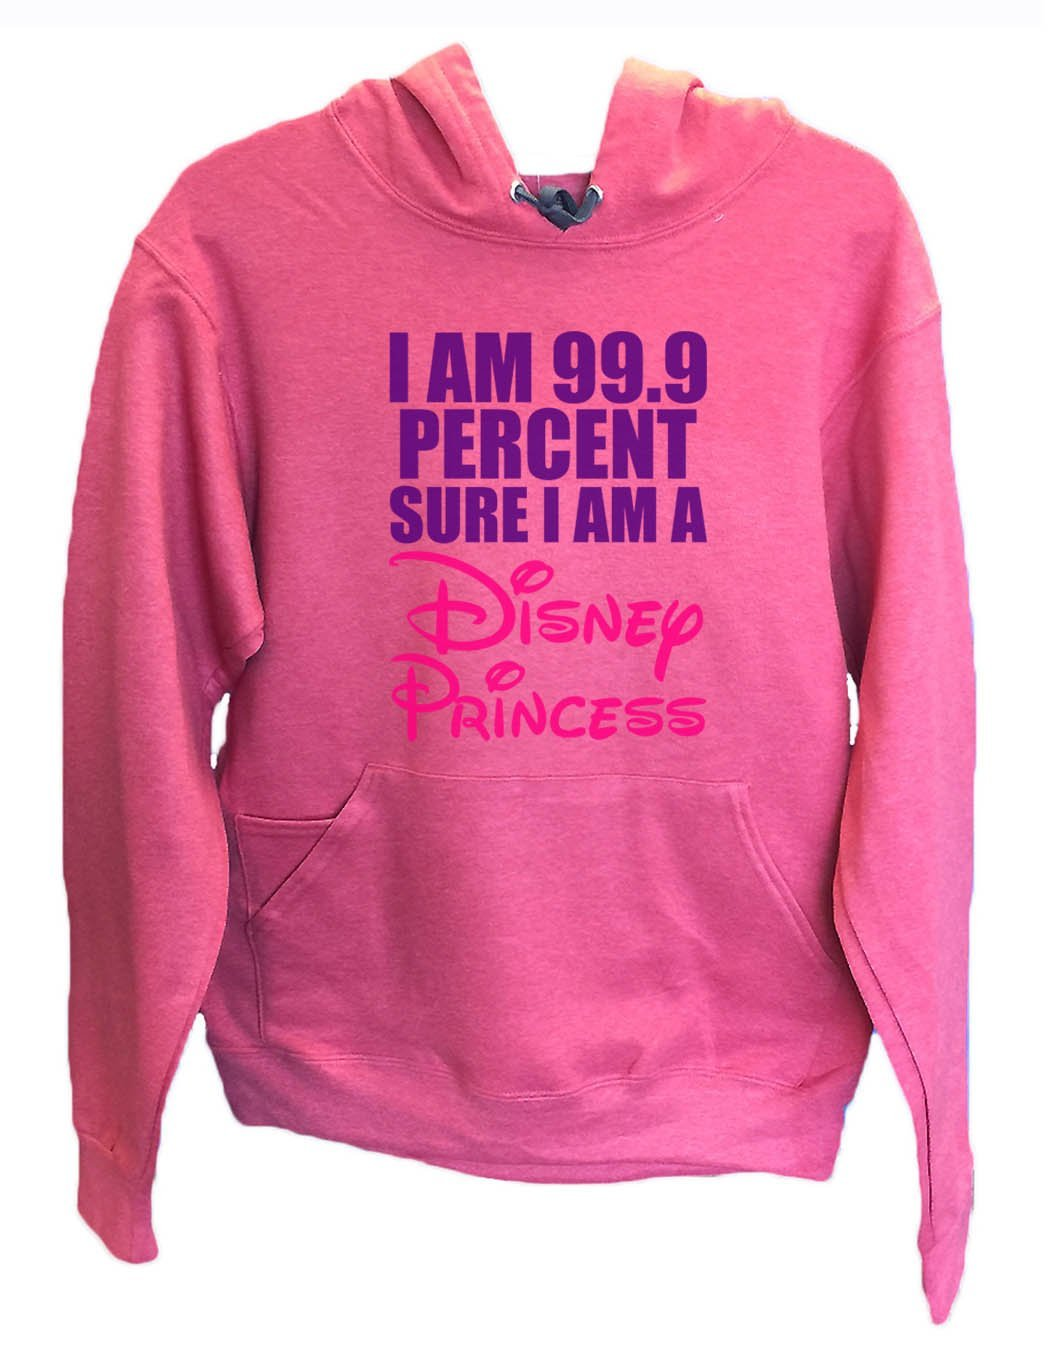 UNISEX HOODIE - I am 99.9 percent sure I am a disney princess - FUNNY MENS AND WOMENS HOODED SWEATSHIRTS - 1631 Funny Shirt Small / Cranberry Red